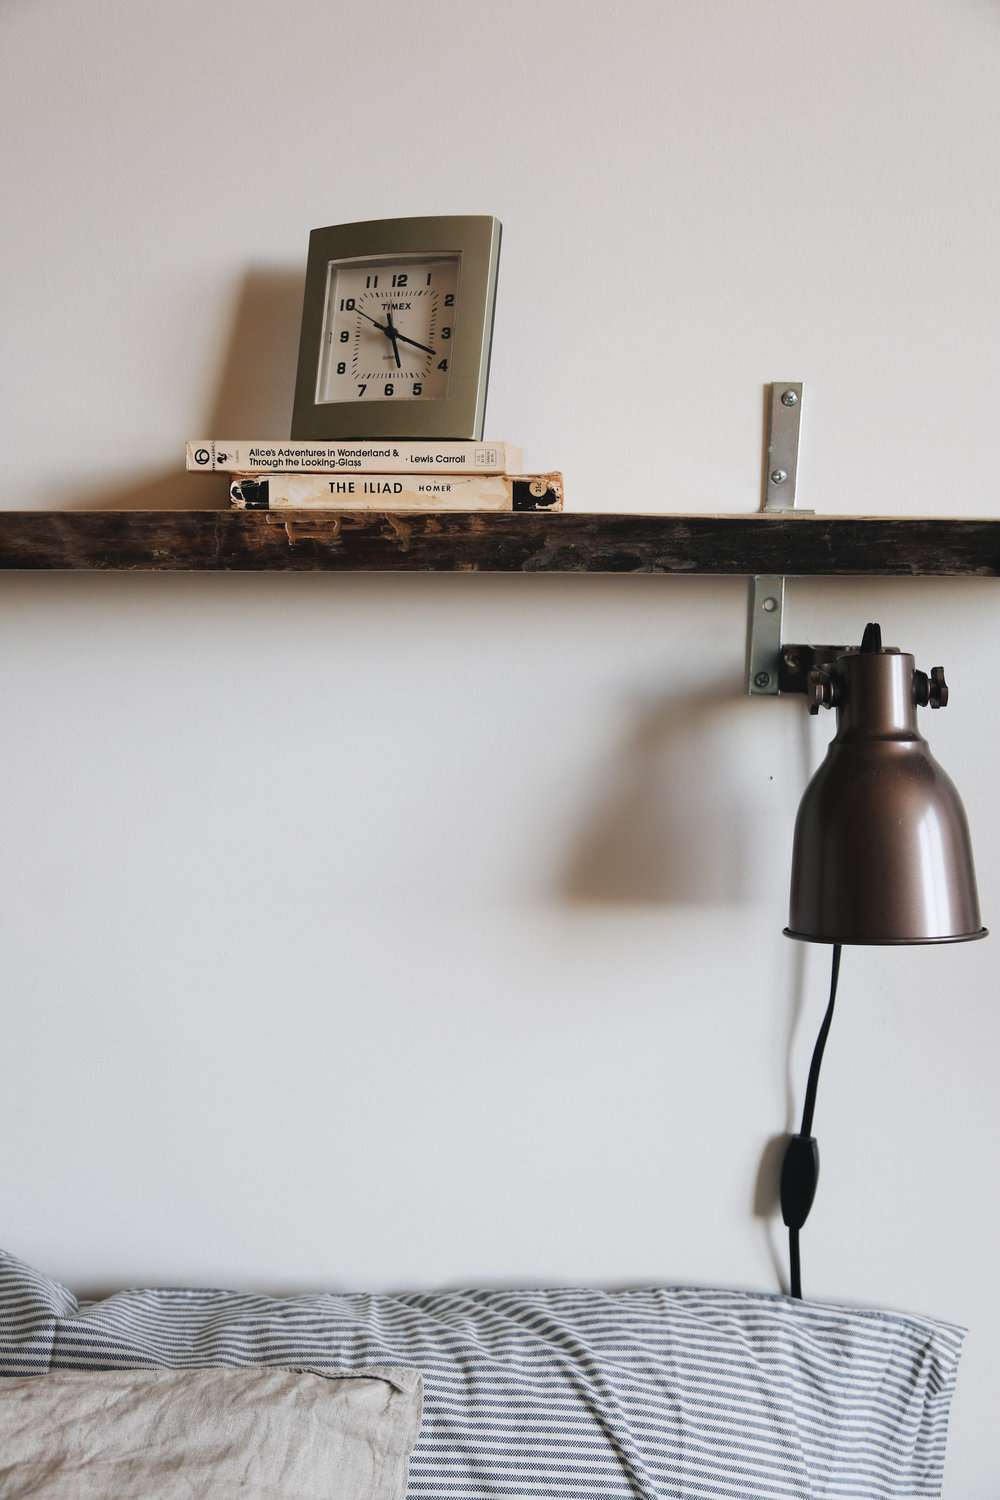 A clock I've had since childhood, some old books, our DIY wooden shelf and Ikea wall lights, since we had no side tables for small lamps.